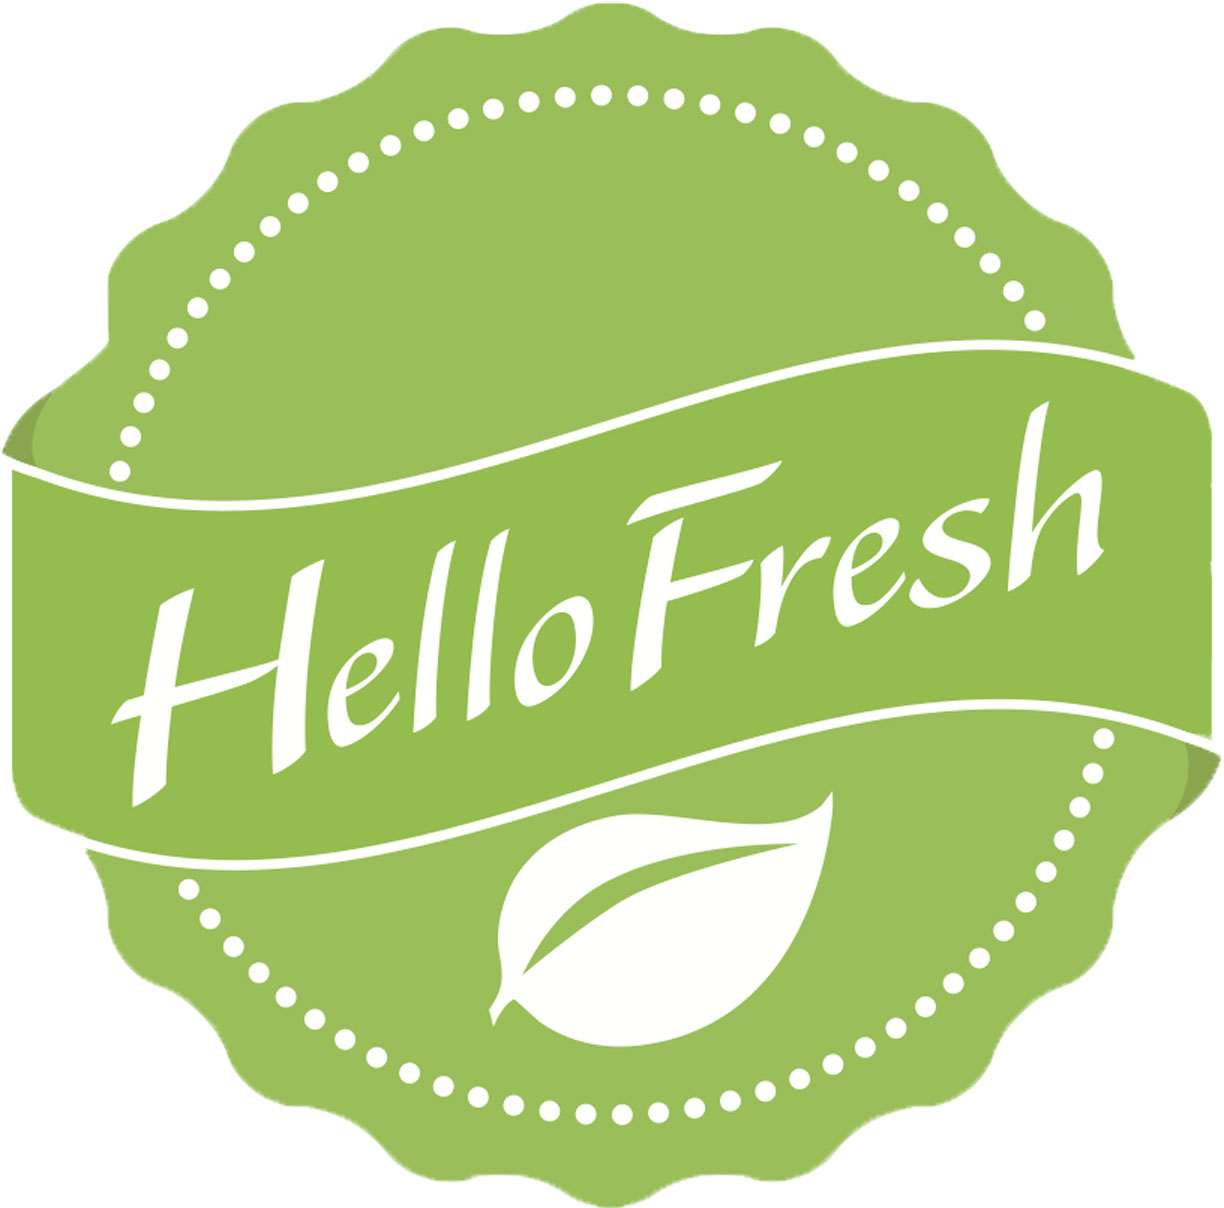 hellofresh logo. Black Bedroom Furniture Sets. Home Design Ideas